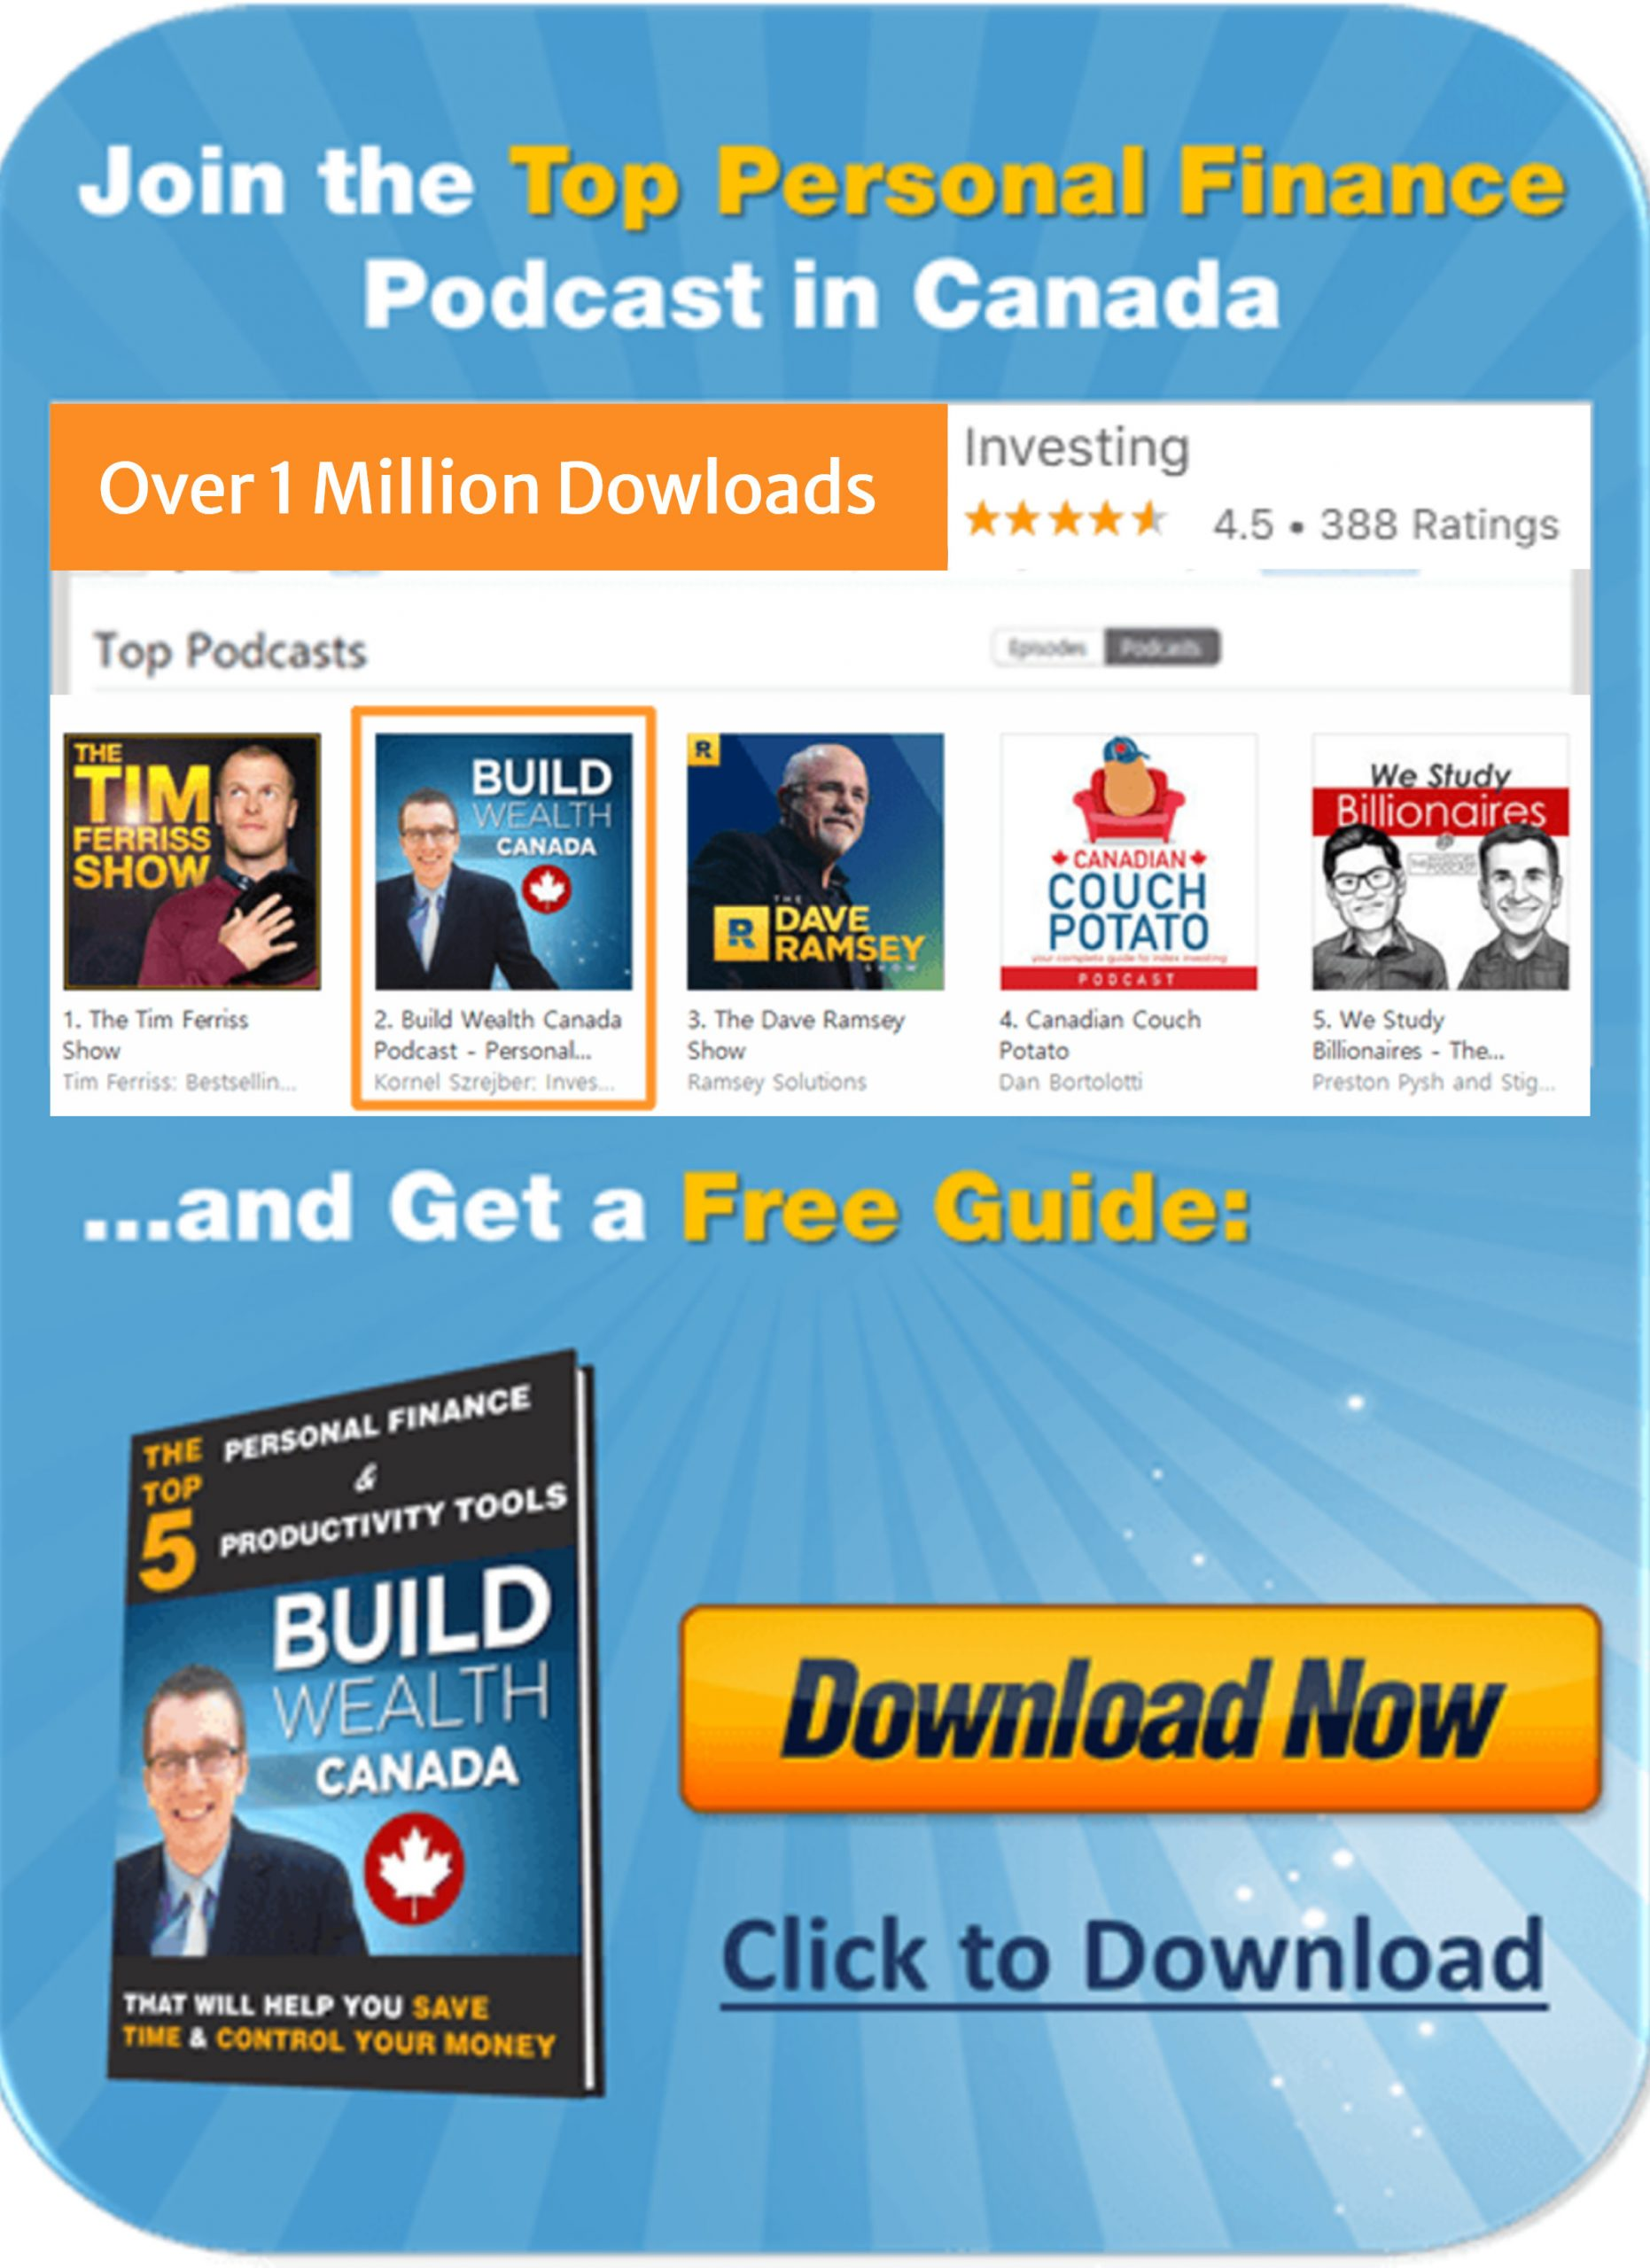 Build Wealth Canada Podcast - Over 1 Million Downloads